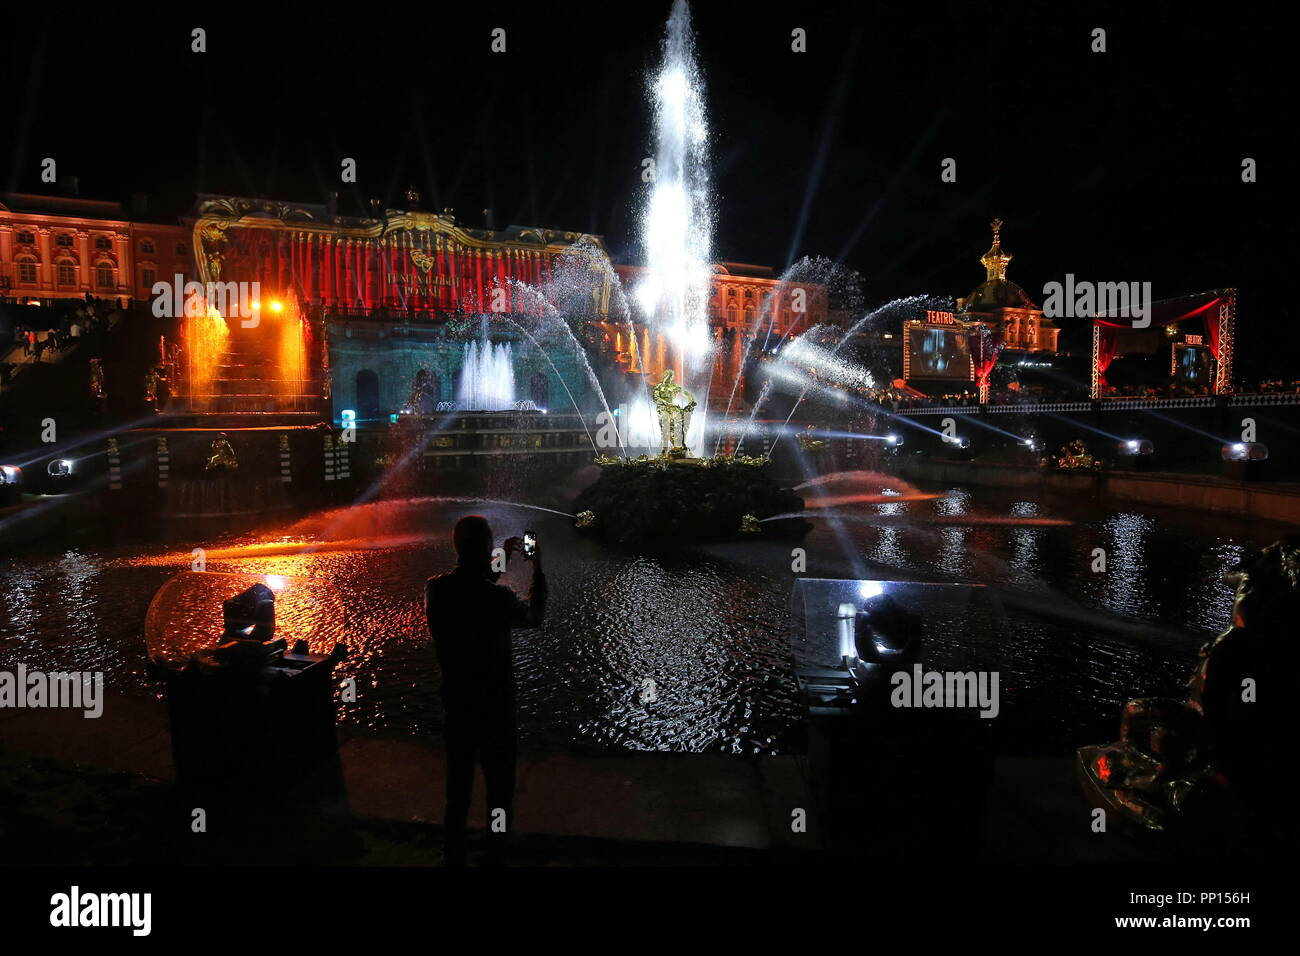 Peterhof: closing of fountains - the main holiday of the St. Petersburg autumn